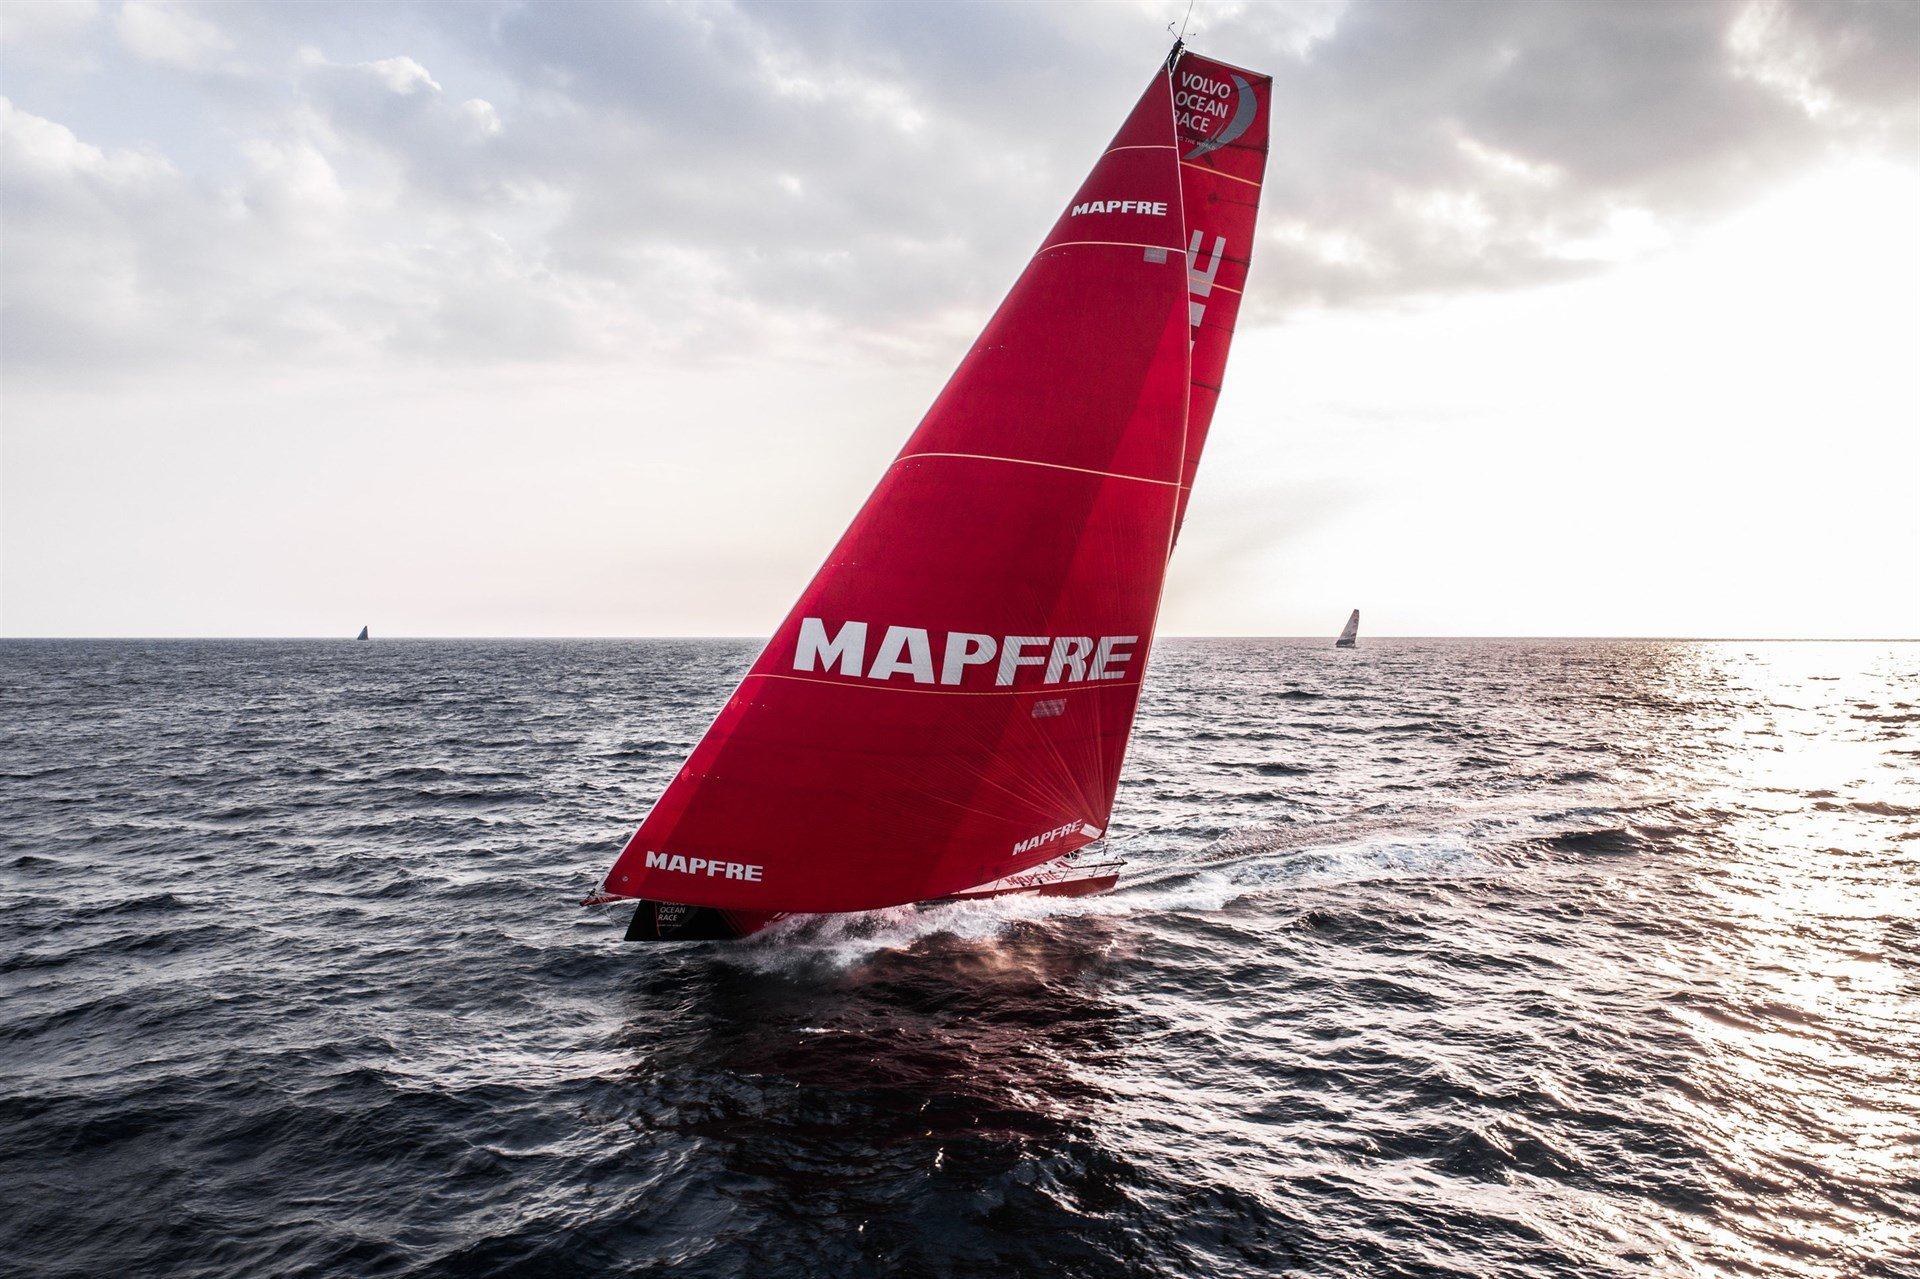 El MAPFRE en la Volvo Ocean Race. /E.PRESS